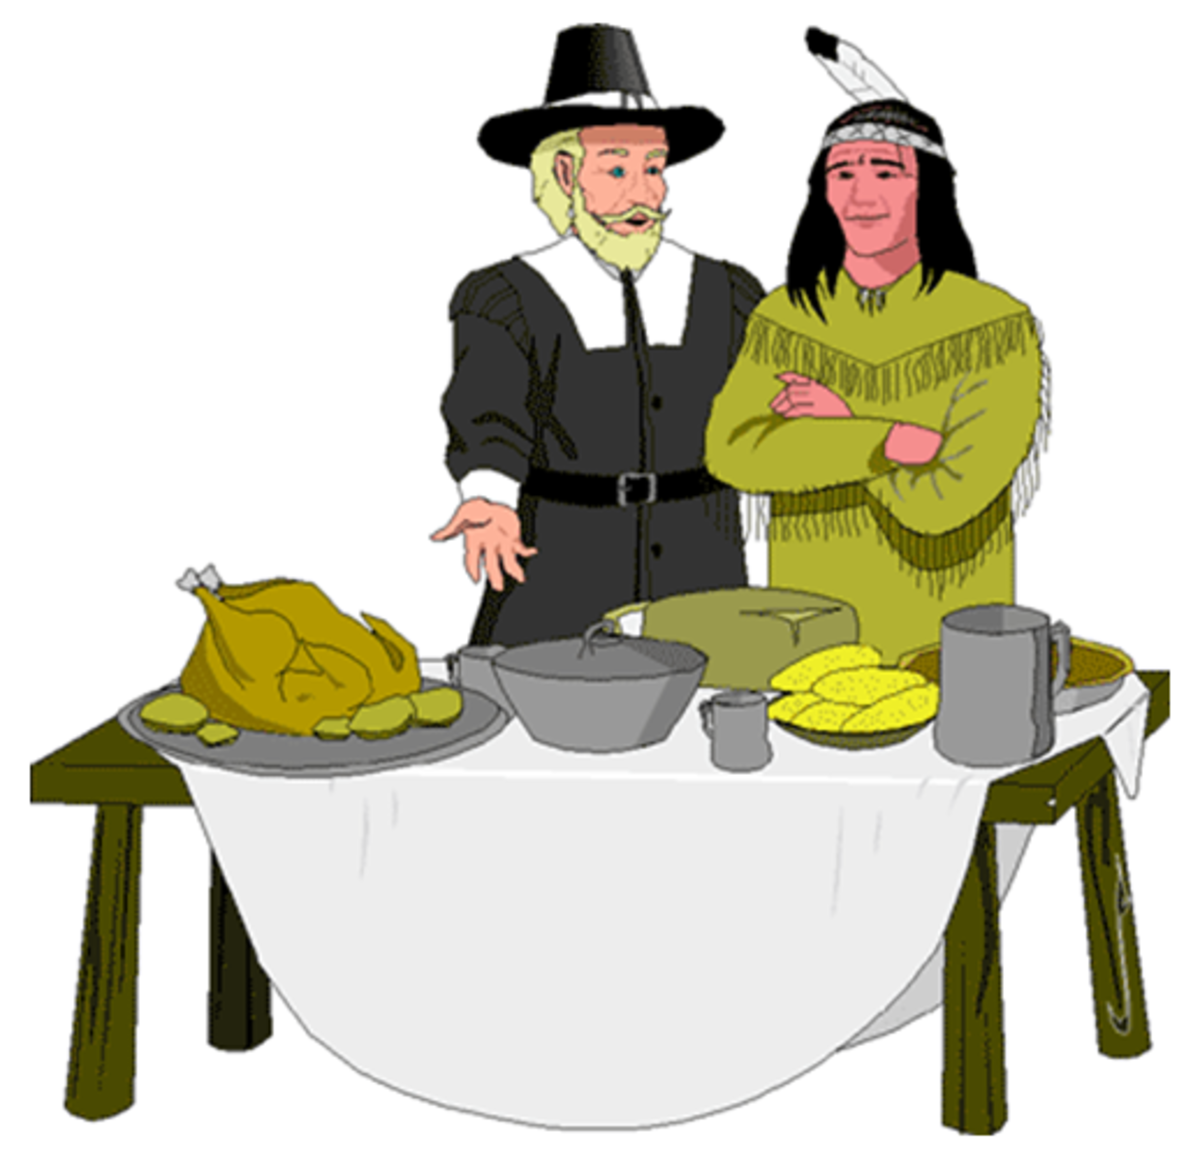 A Pilgrim and an Indian at a Thanksgiving Table